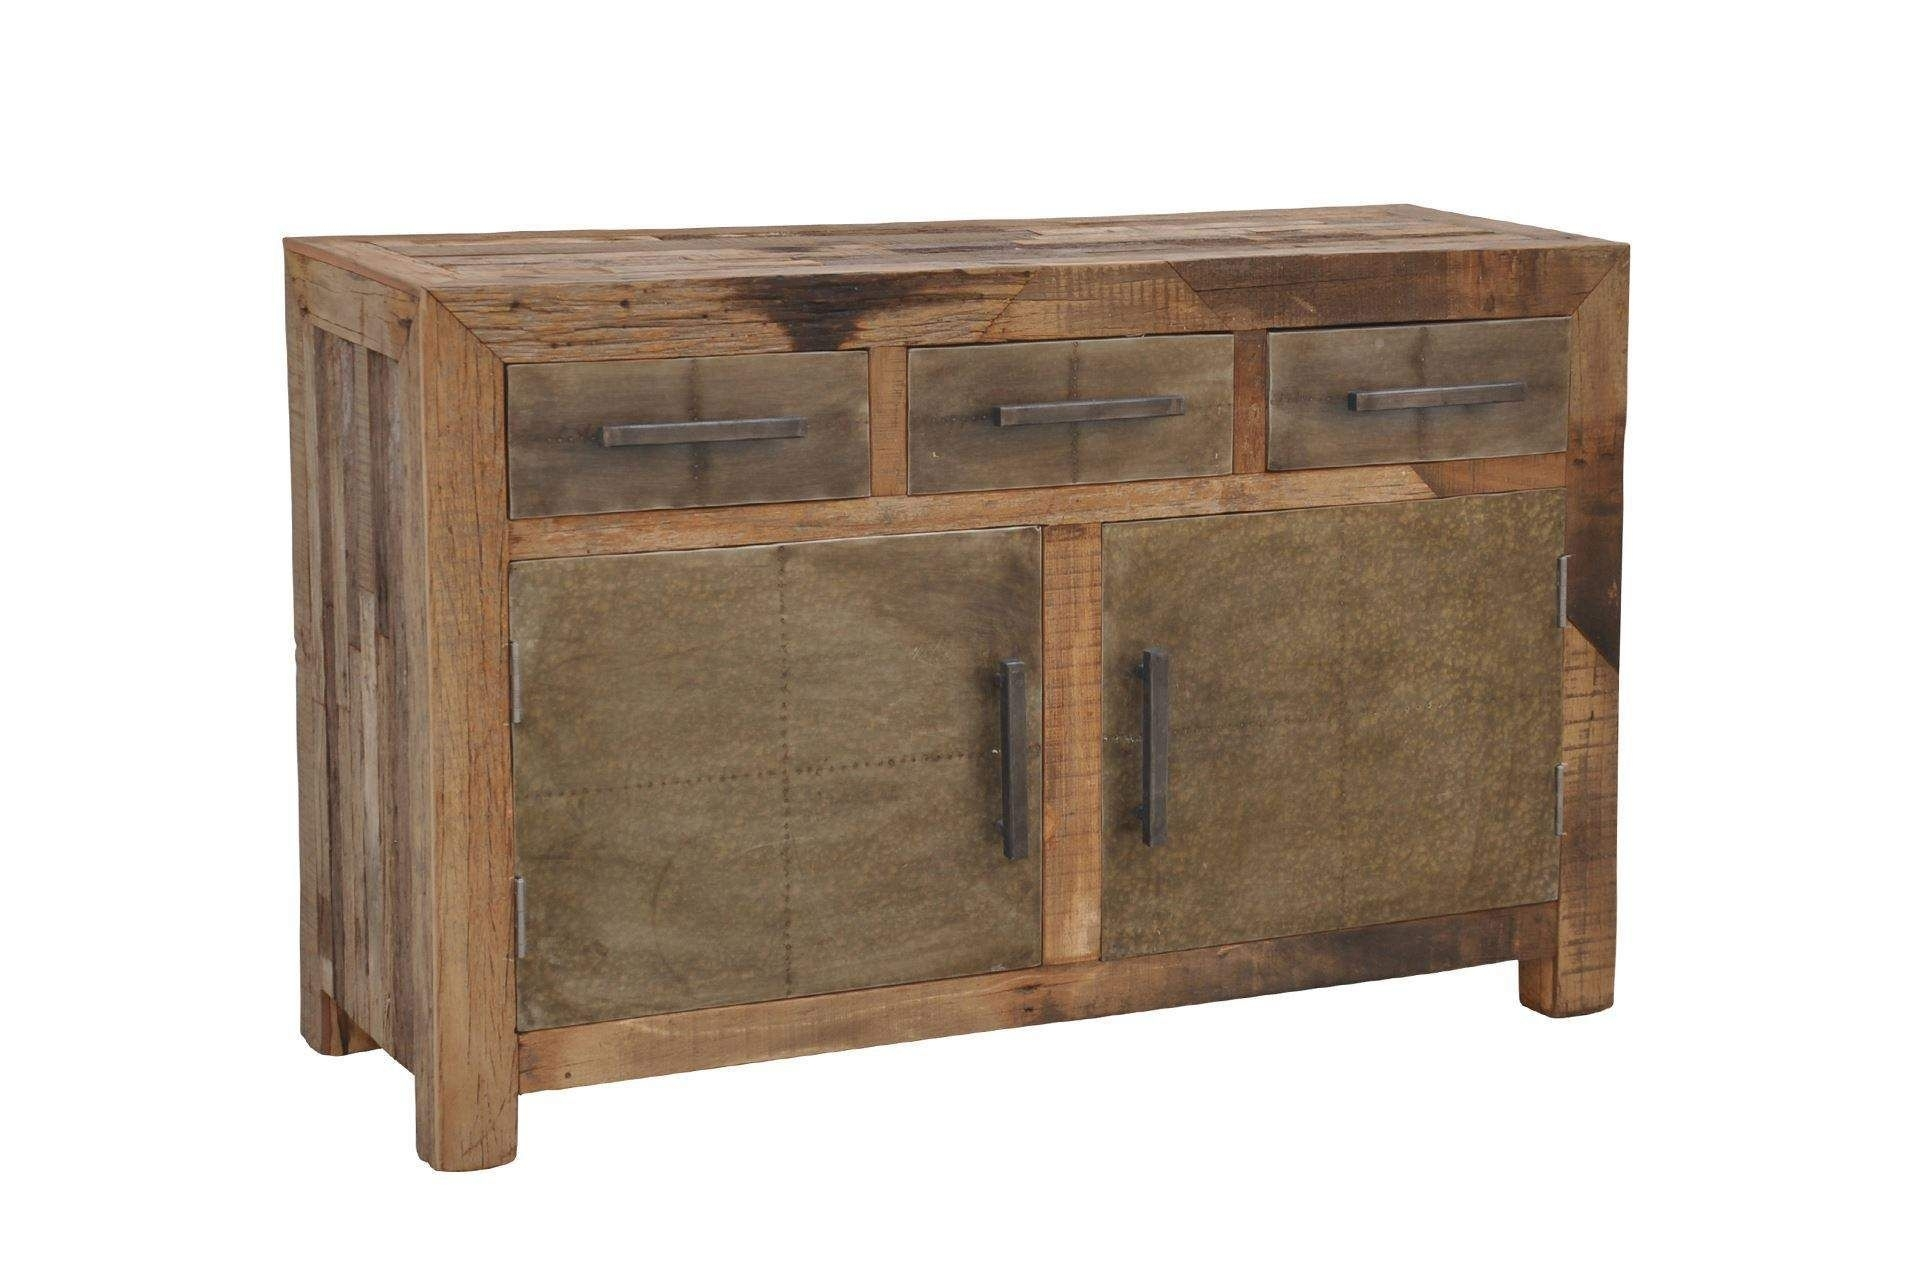 Otb Akash 3-Drawer/2-Door Sideboard | Country Rustic/farm Decor throughout 3-Drawer/2-Door Sideboards (Image 22 of 30)